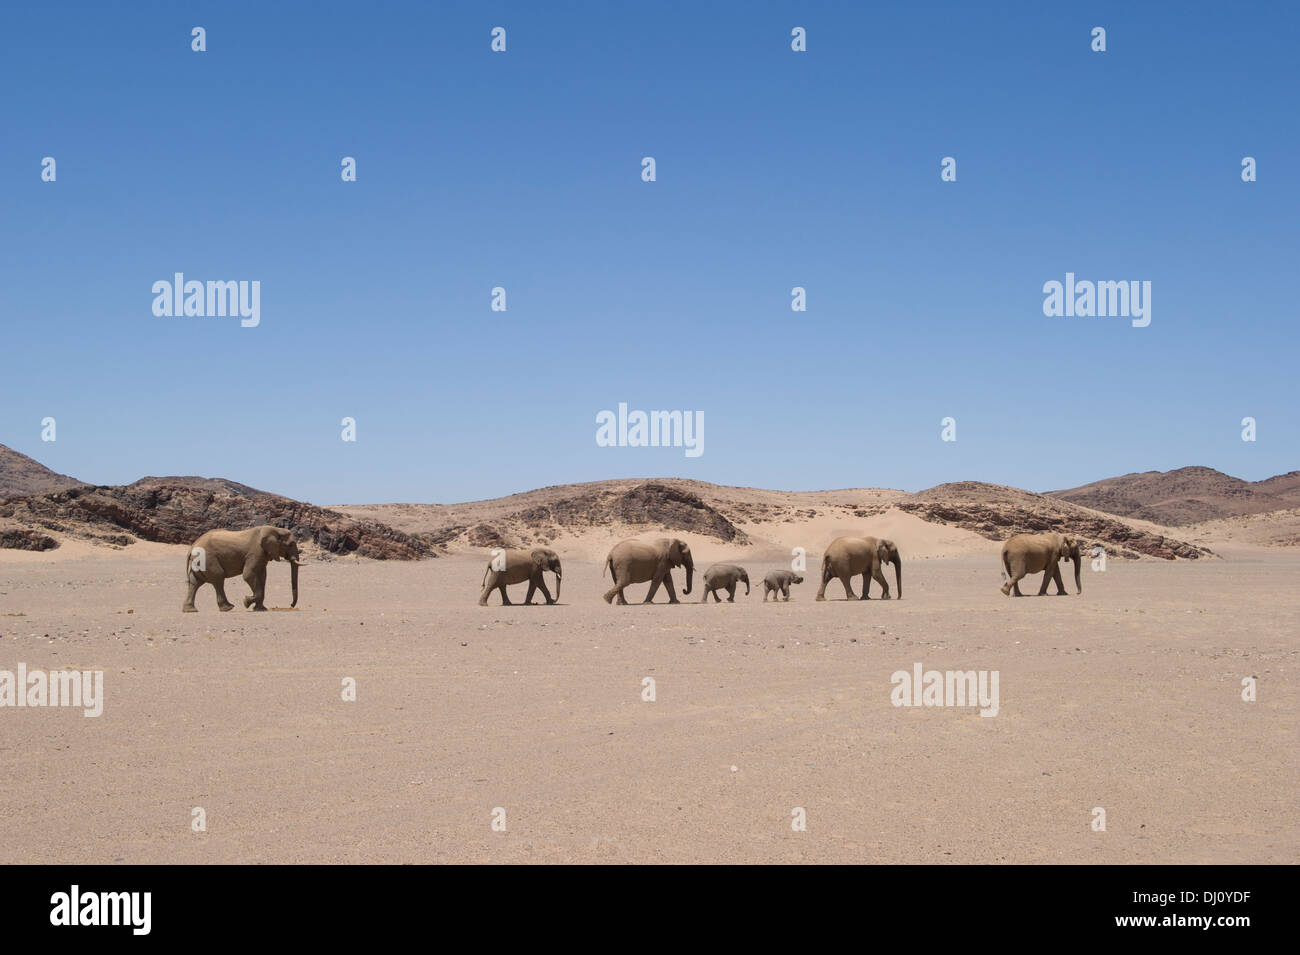 Elephants of desert crossing a sand area at Hoanib river, Namibie - Stock Image